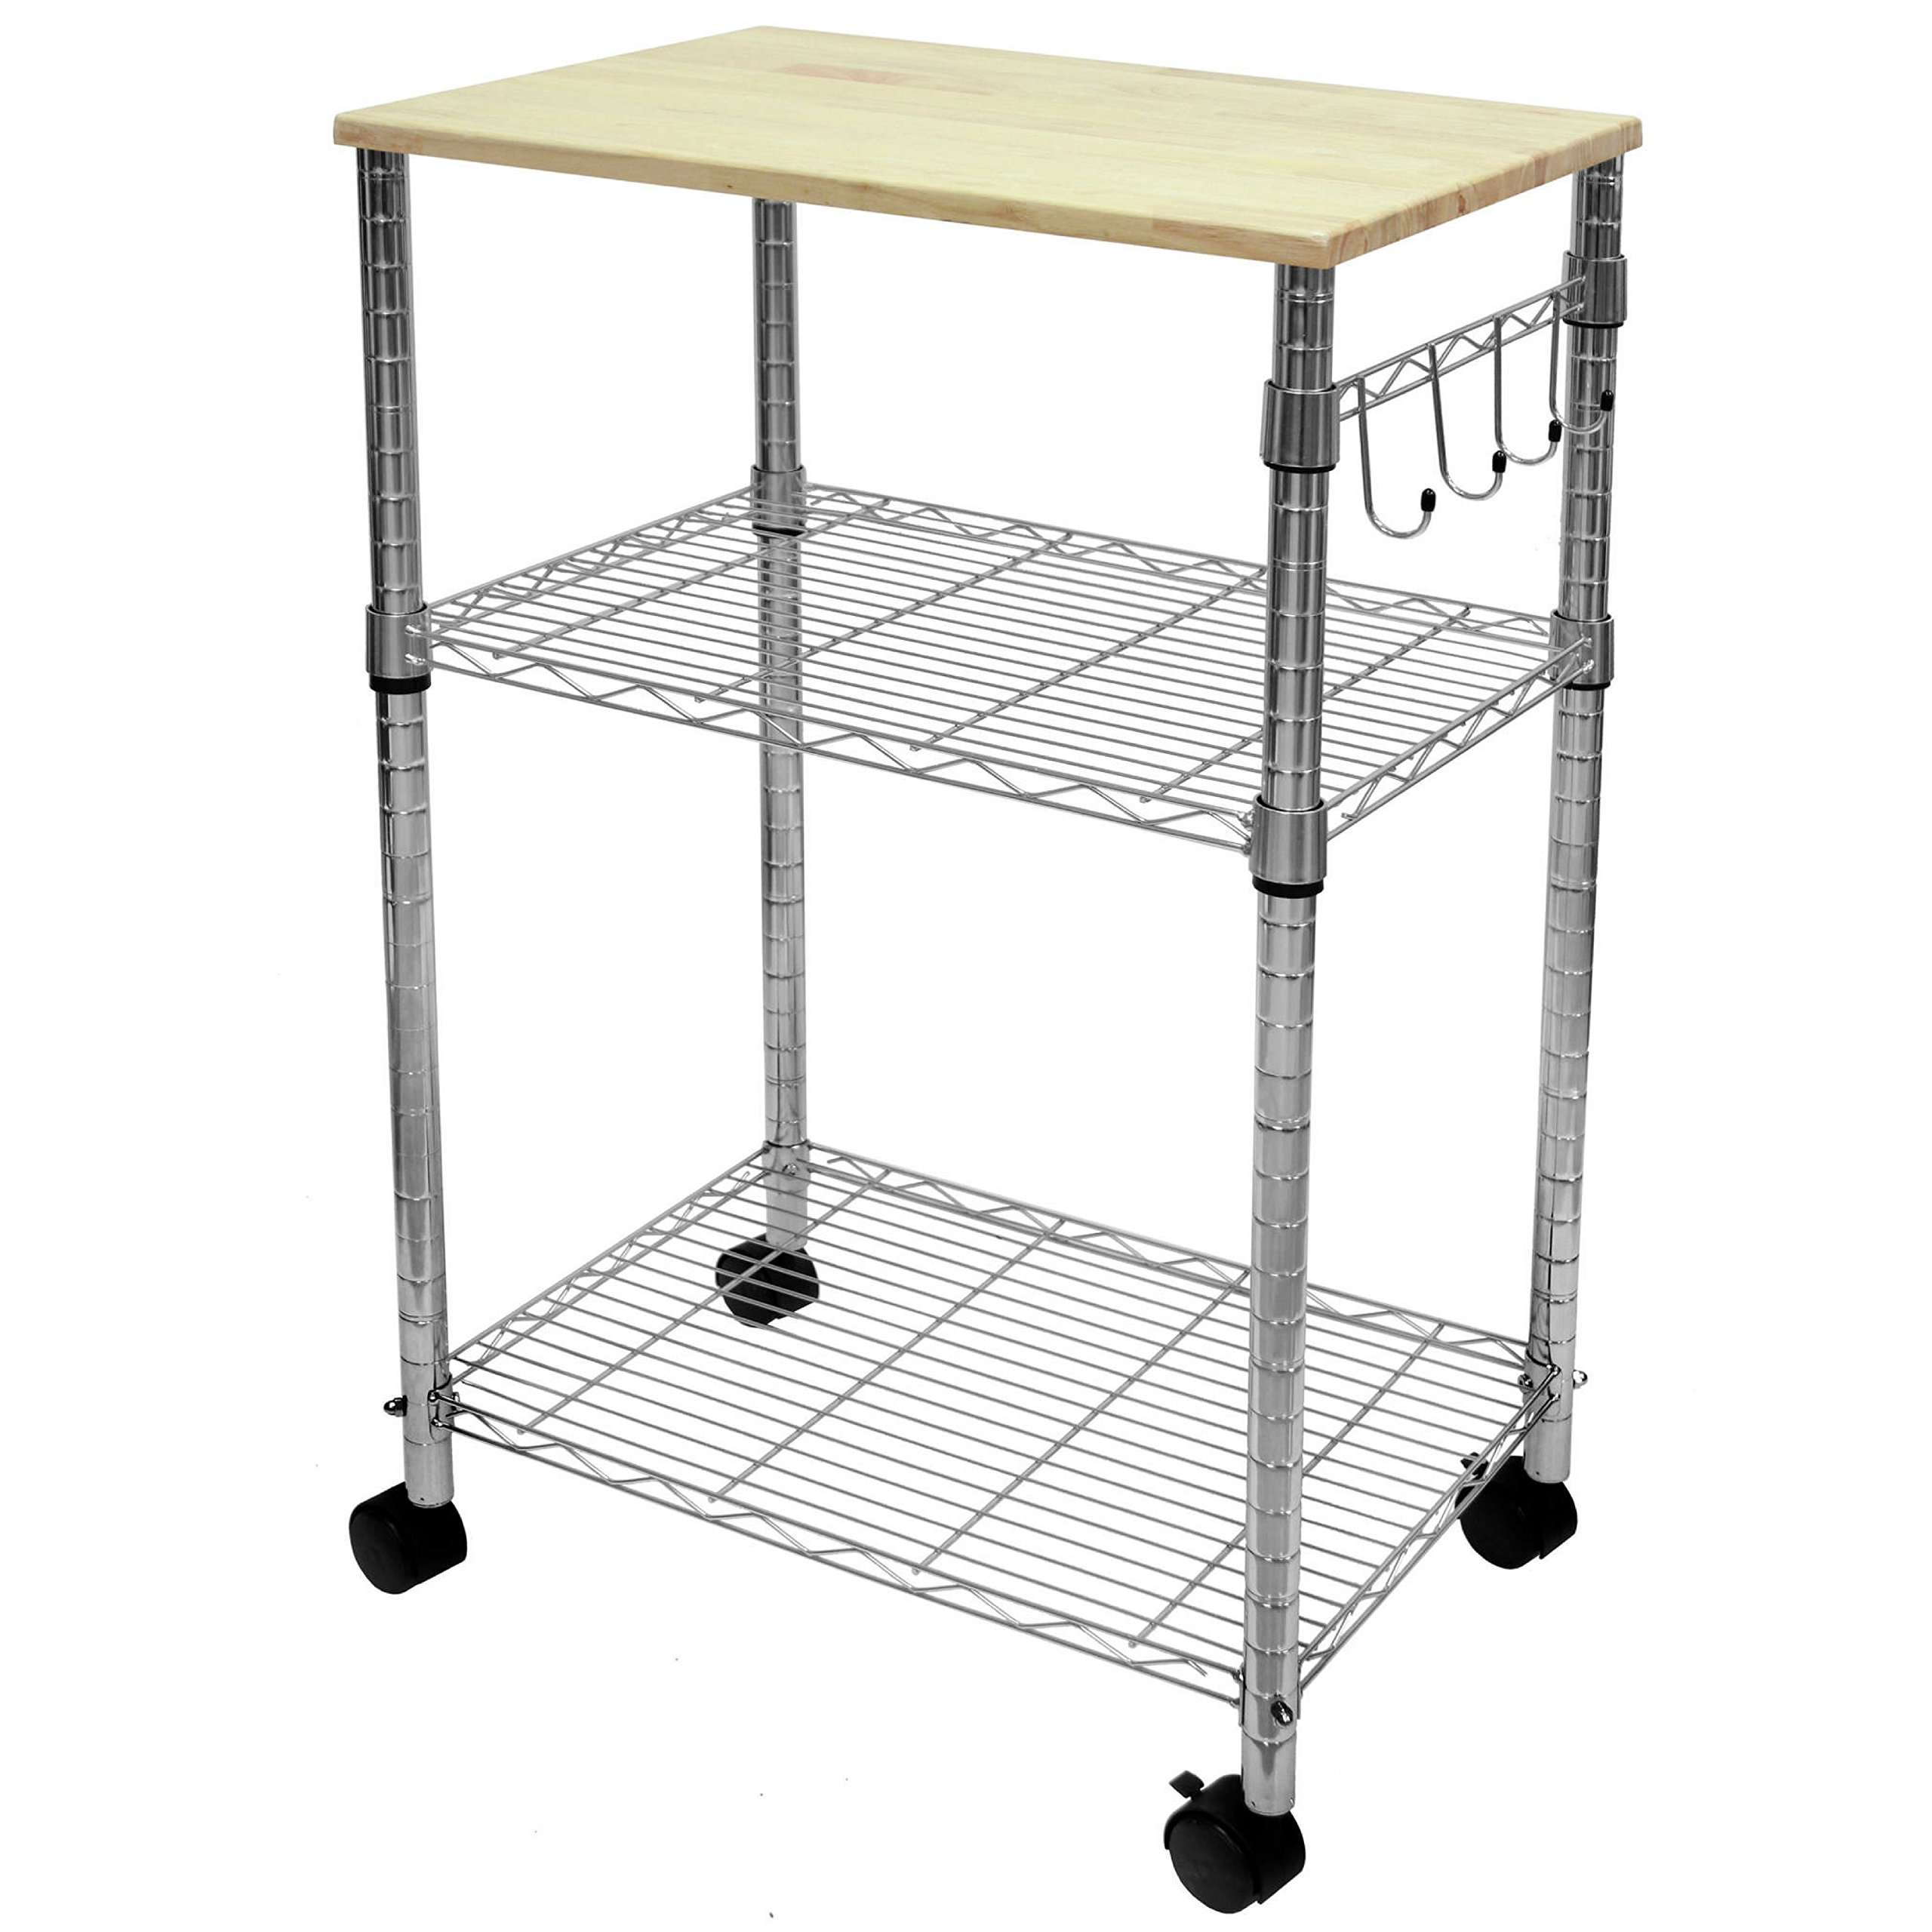 Mainstays Cart Sturdy Metal Sleek Design Wood Top Multi-Purpose Kitchen Cart, Chrome by Mainstay (Image #2)